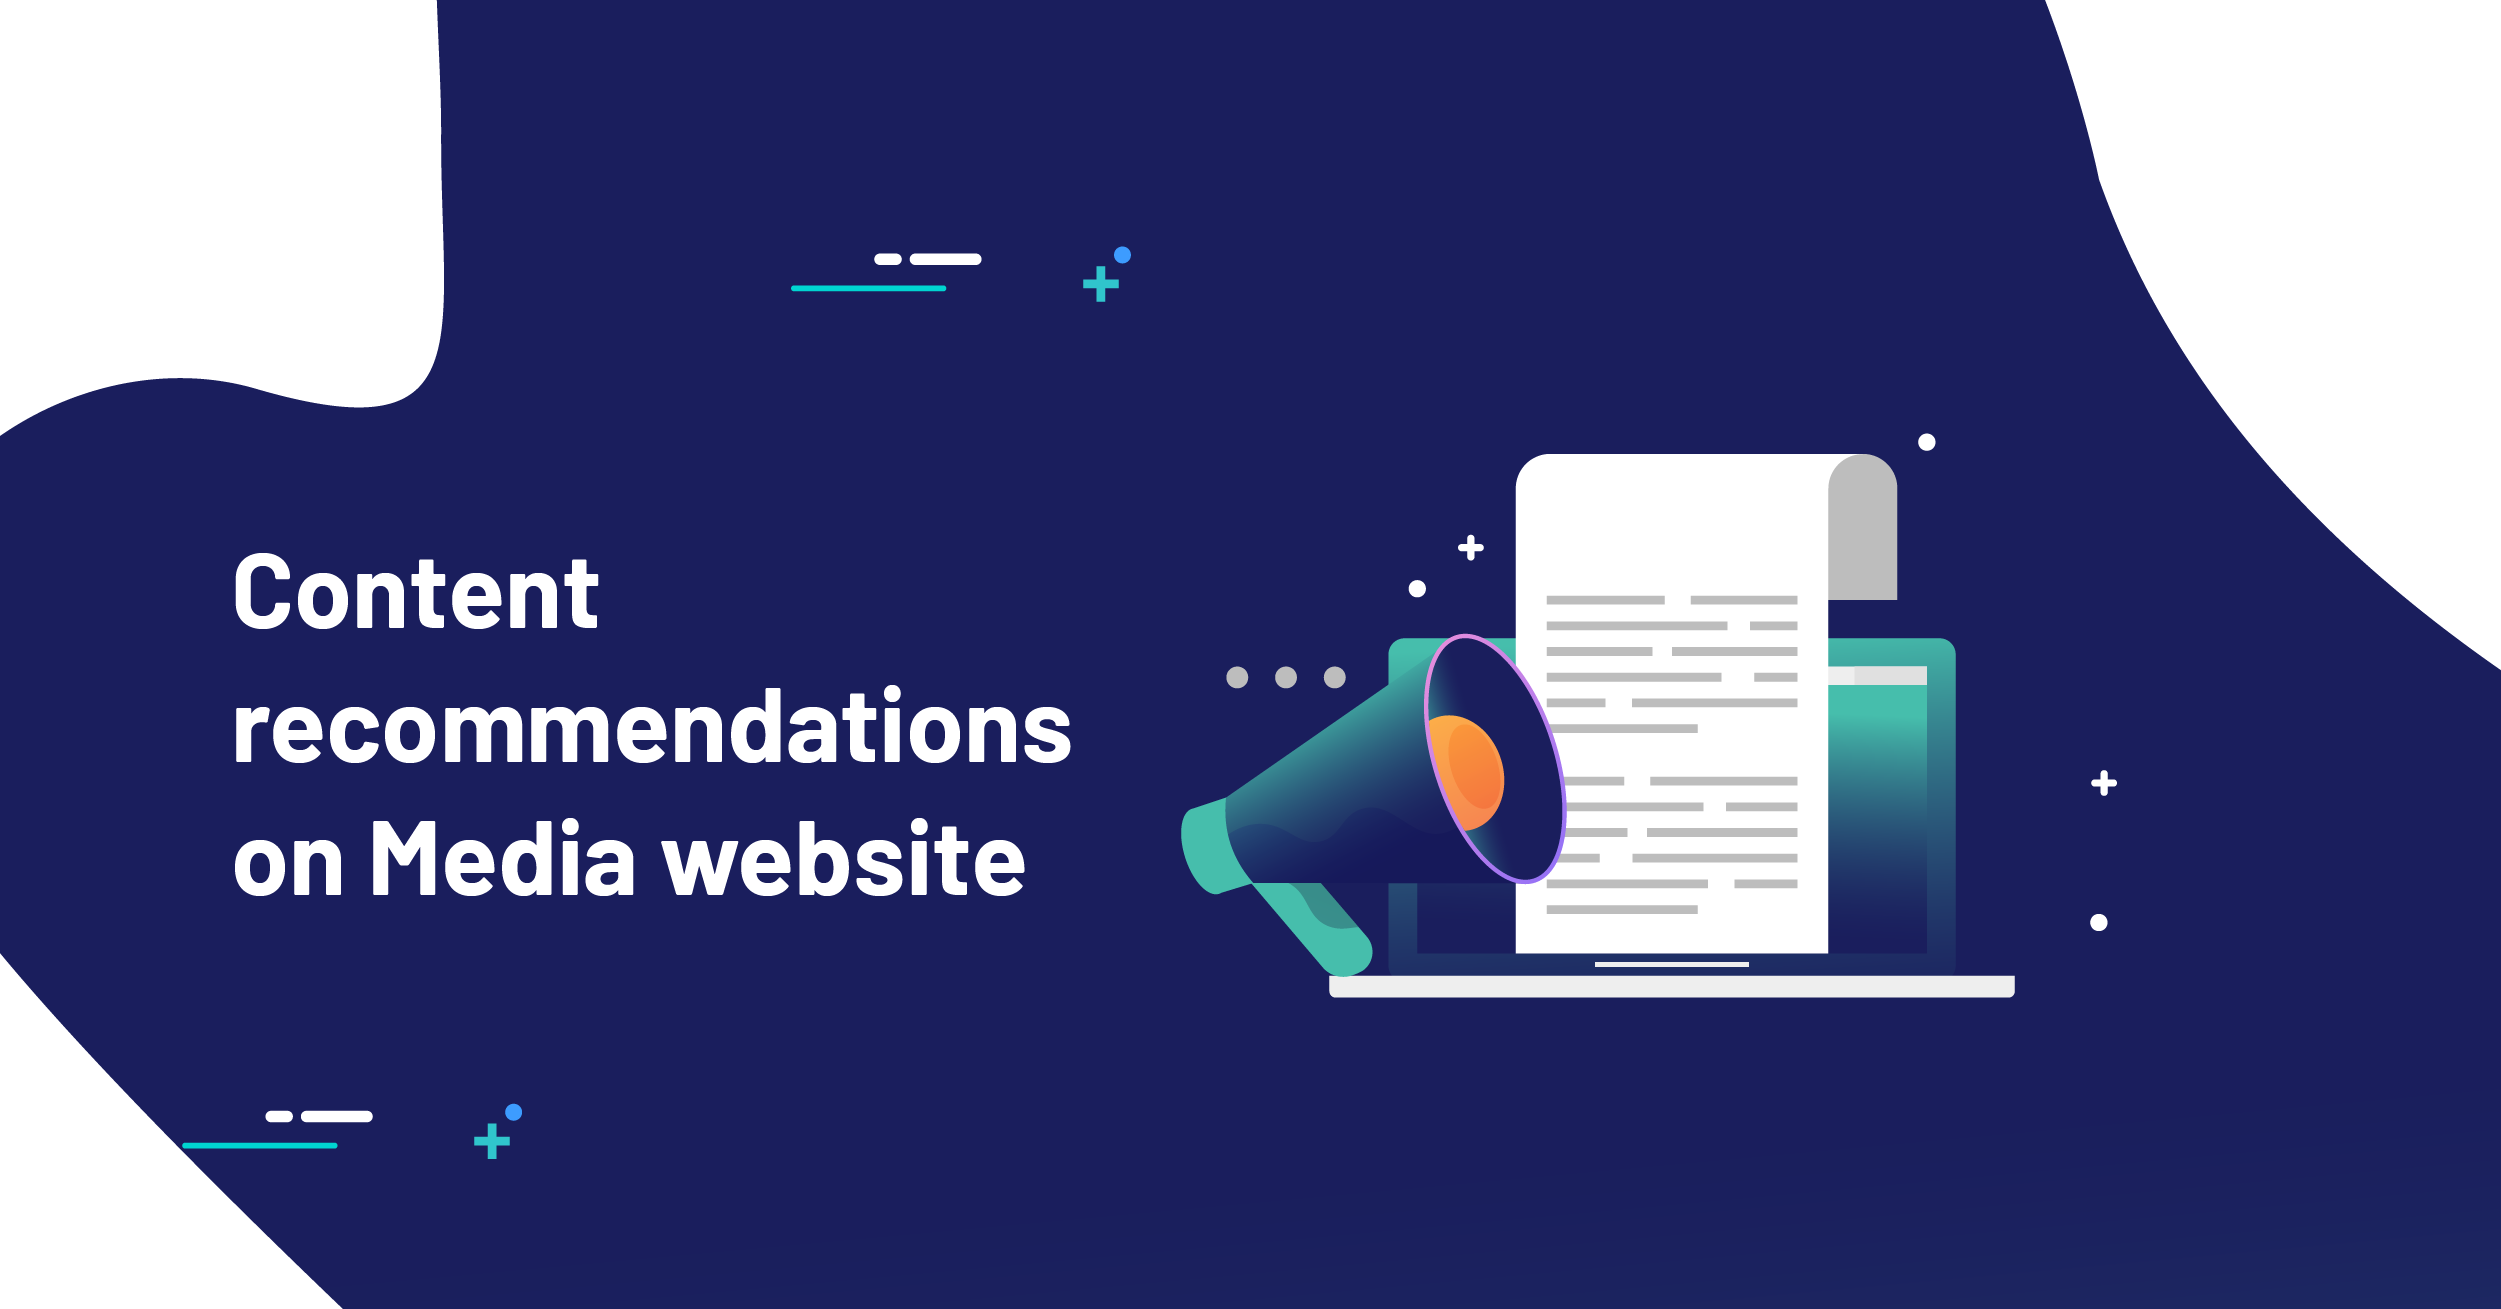 Content recommendations on Media website